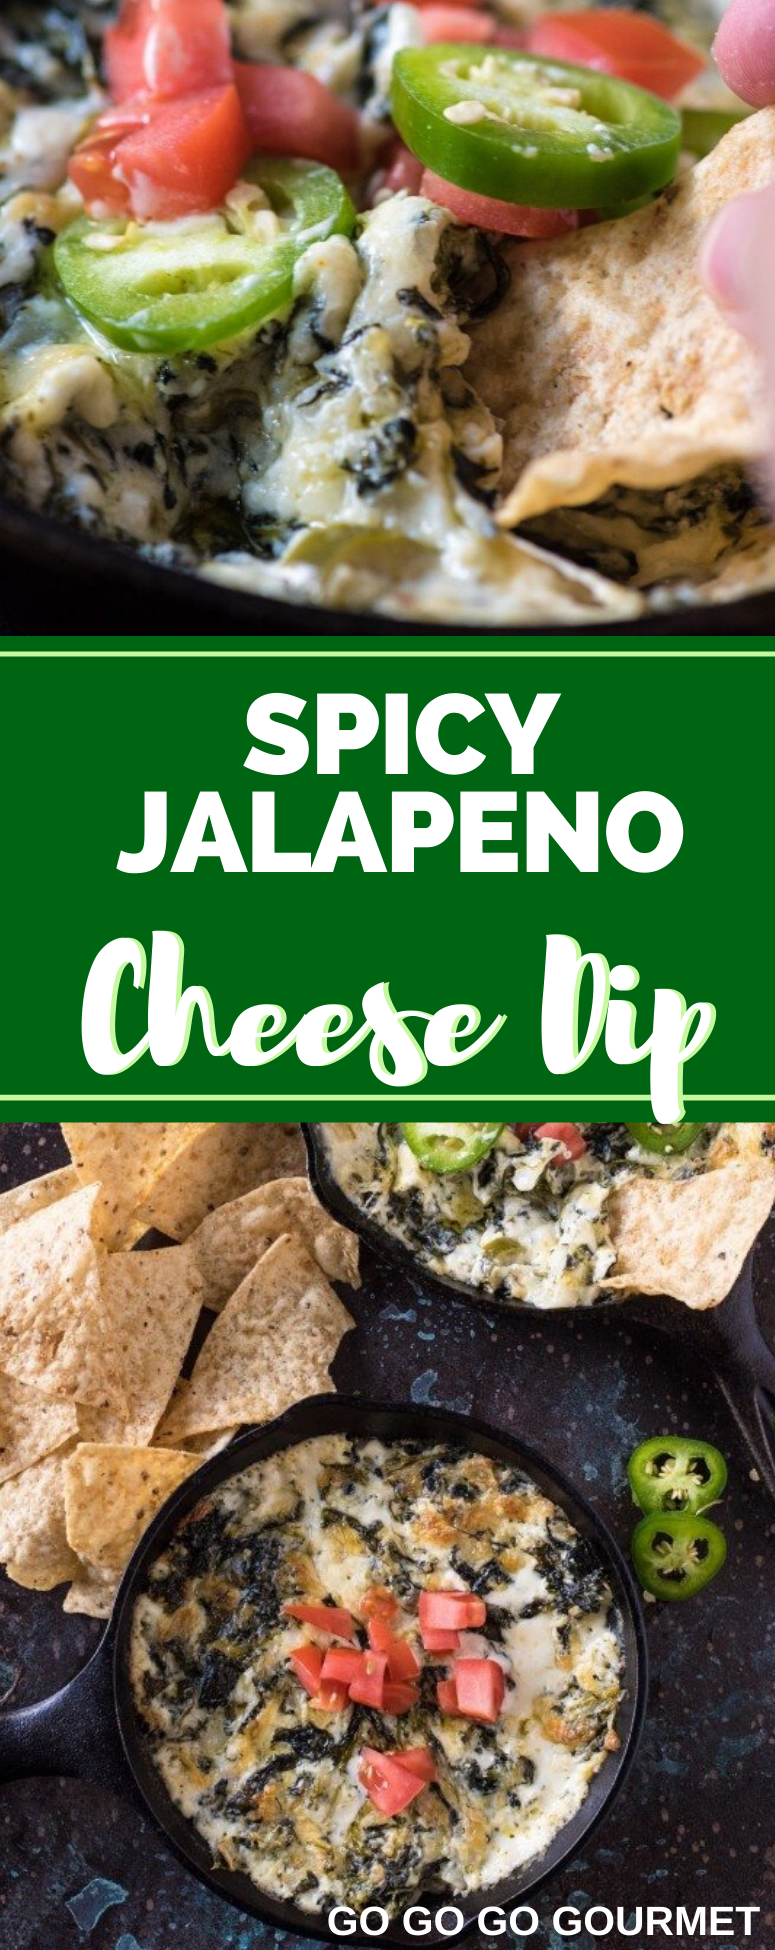 This Easy Spicy Jalapeno Spinach Dip recipe is baked right in the oven to make the perfect Super Bowl snack! You could even add bacon to kick it up a notch! #superbowl #superbowlfood #cheesedip #spinachdip #gogogogourmet via @gogogogourmet